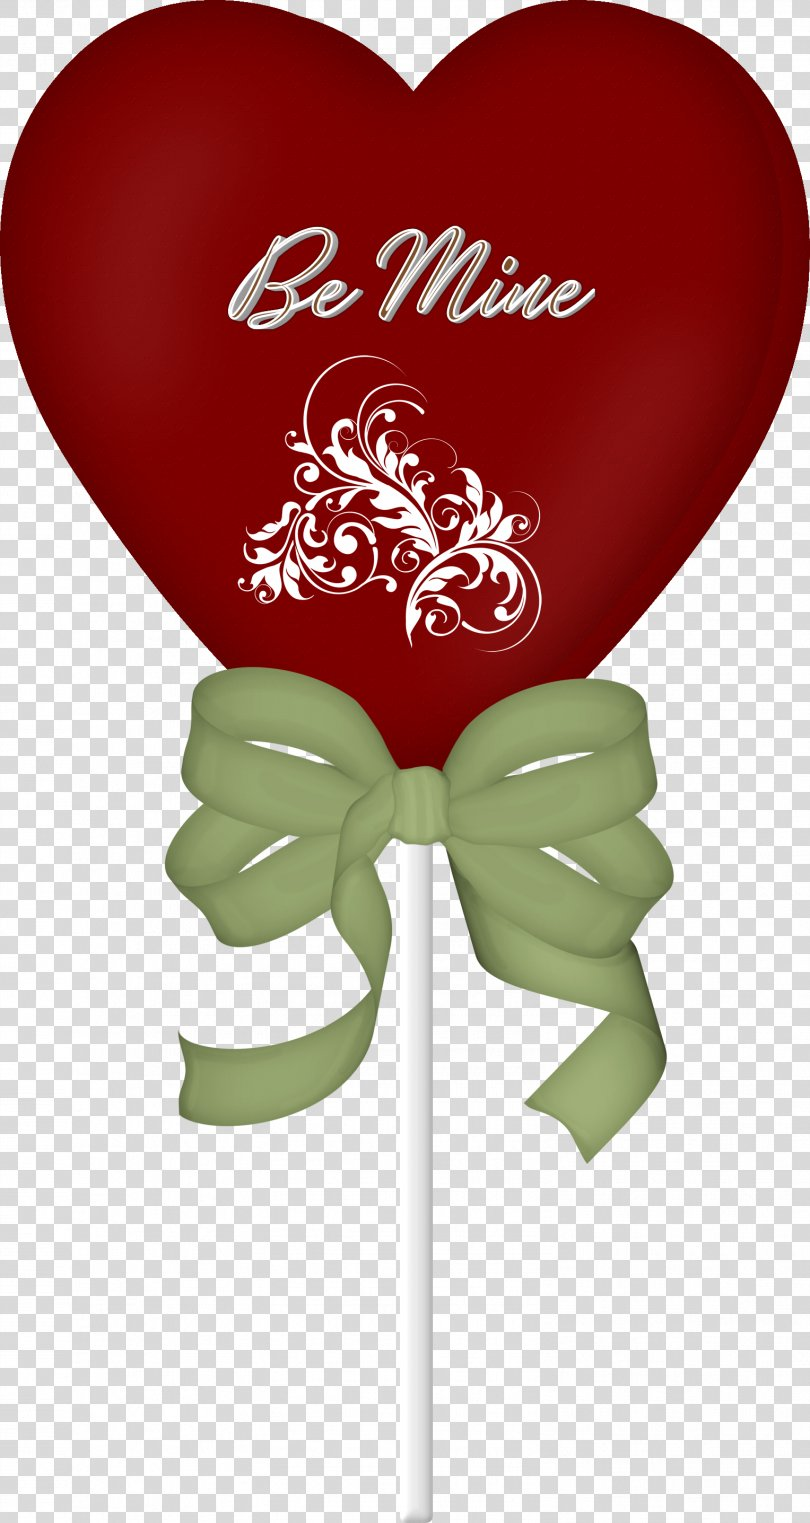 Heart Love Centerblog Image Valentine's Day, Happy Valentines Day Text PNG